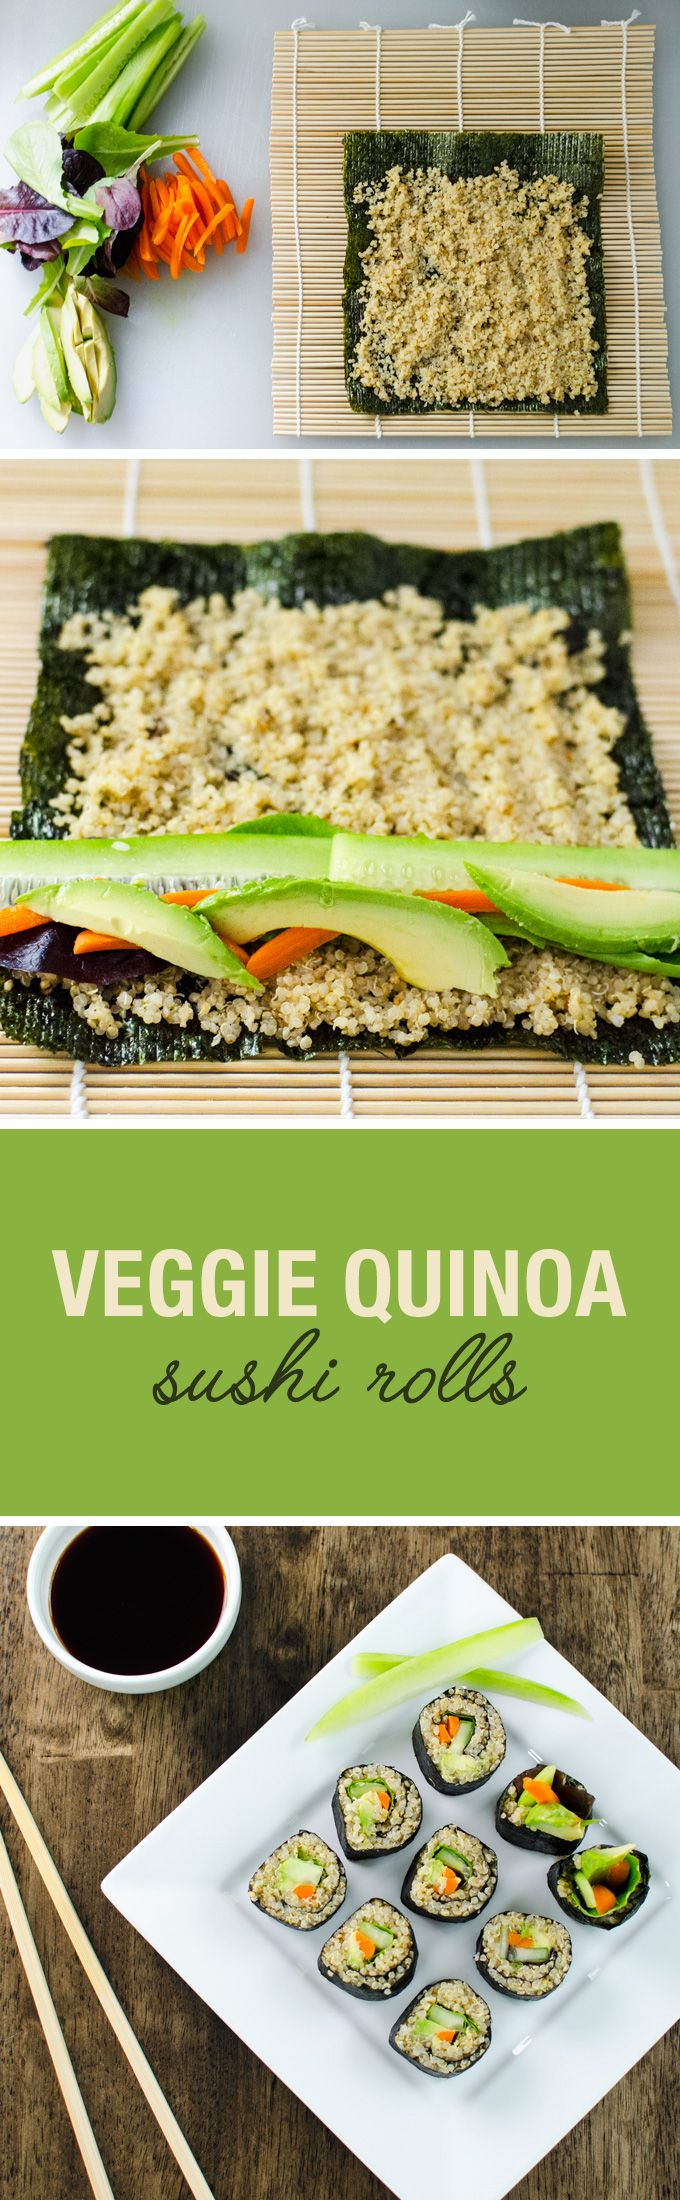 83 best packing light for lunch images on pinterest clean eating easy and delicious veggie quinoa sushi rolls vegan recipe macrobiotic gluten free sisterspd